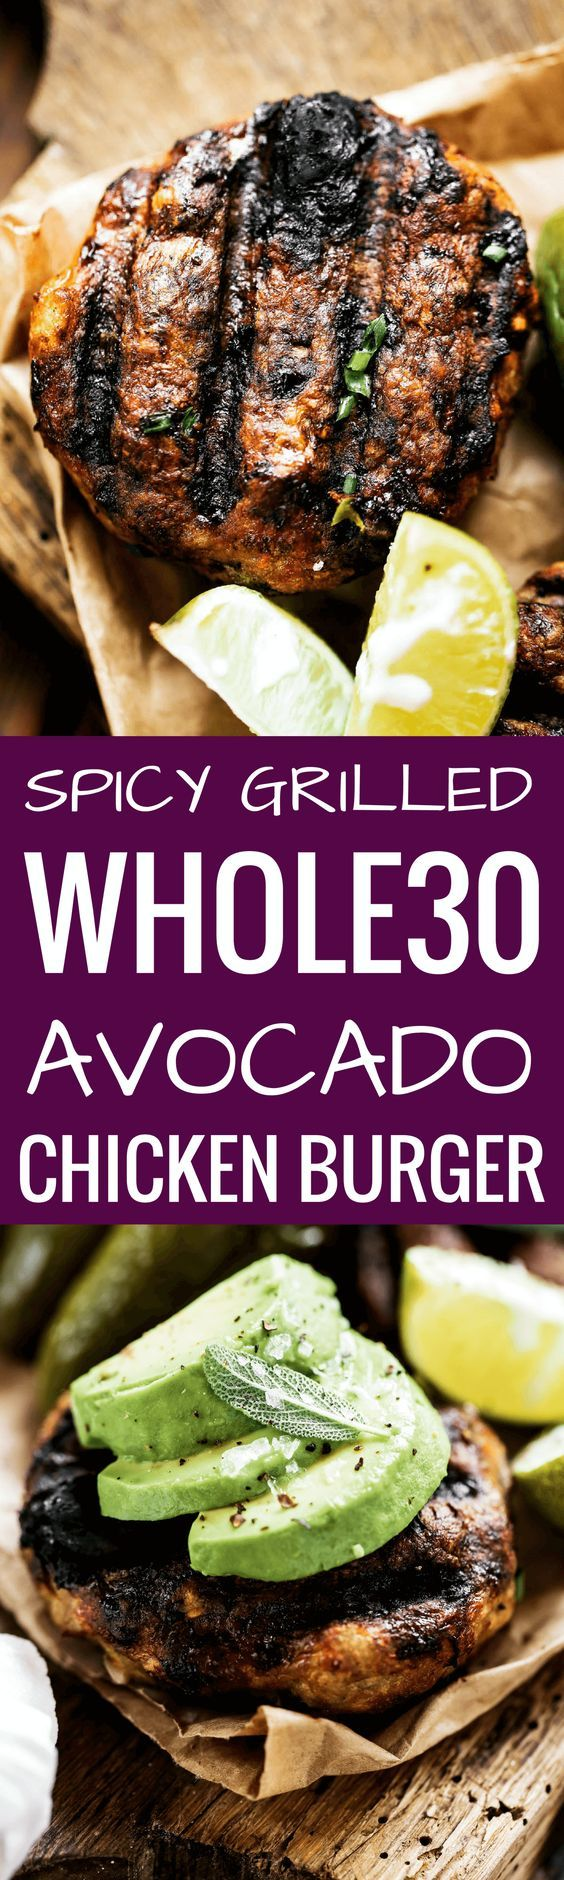 The most delicious LEGIT spicy avocado chicken burgers (paleo & whole30)! Loaded with fresh basil and garlic! Top with a creamy white sauce and red onion. Plus, these fluffy and soft grain free buns are to die for! Check out this whole30 burger. Paleo burger recipe. Paleo burger patties. Paleo chicken burgers. Paleo meal plan. Easy paleo dinner recipes. Easy whole30 dinner recipes. Whole30 recipes. Whole30 lunch. Whole30 meal planning. Whole30 meal prep. Healthy paleo meals. Healthy Whole30…